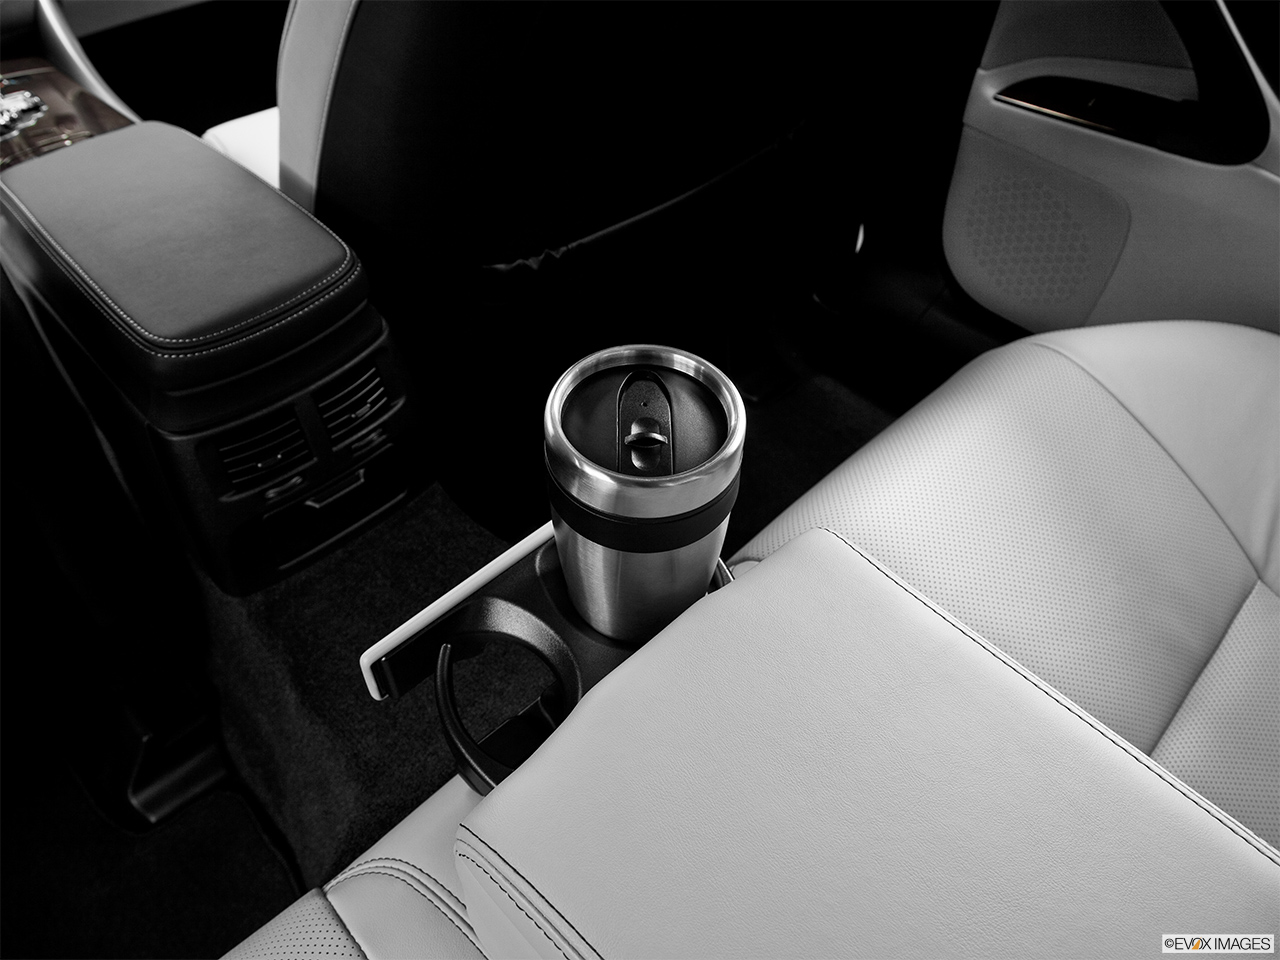 2013 Lexus IS 250 IS 250 RWD Third Row center cup holder with coffee prop.